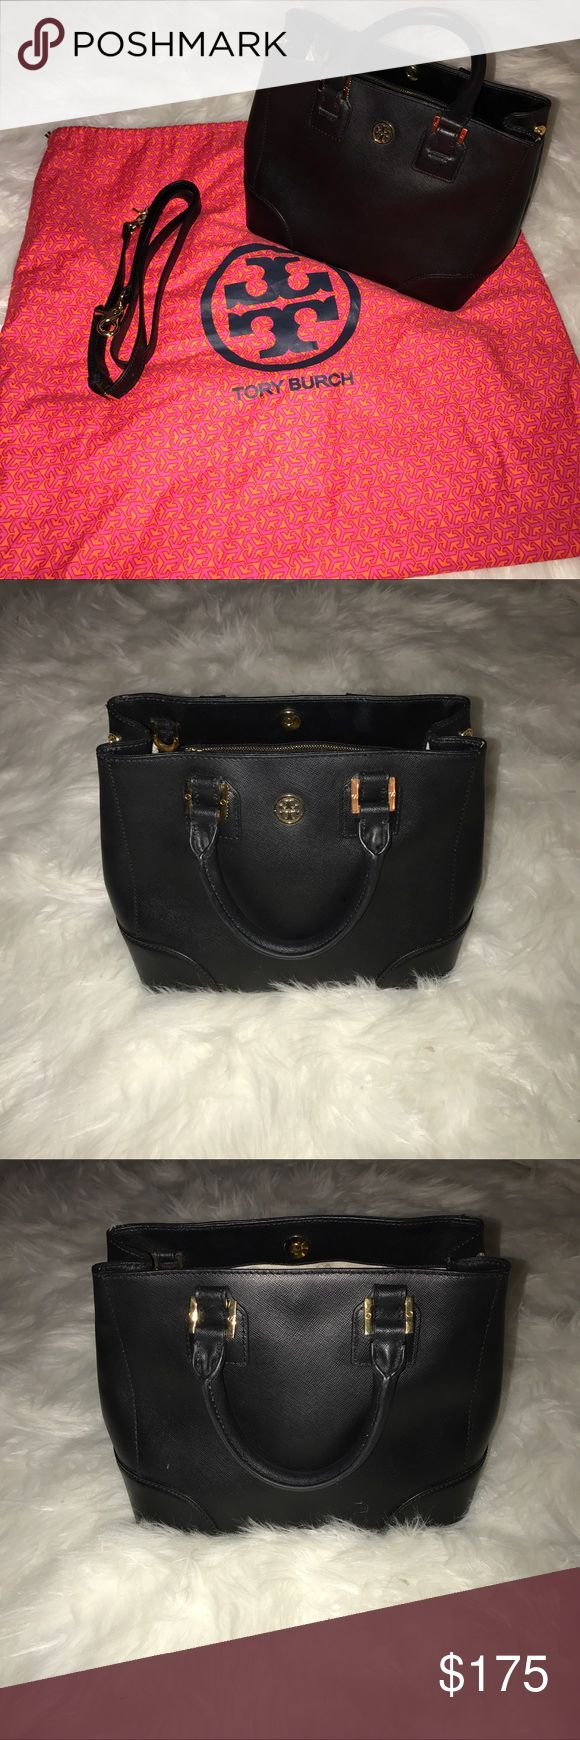 """Tory Burch small Robinson zip tote Authentic Tory Burch small Robinson zip tote. Black saffiano leather with gold hardware. There are some marks inside one of the pockets and some scratching on the back and minor scratching on the bottom of bag. Comes with dust bag and cross body strap. Handles have a 4.5"""" strap drop. 11""""Wx8""""Hx6.5""""D Tory Burch Bags Totes"""